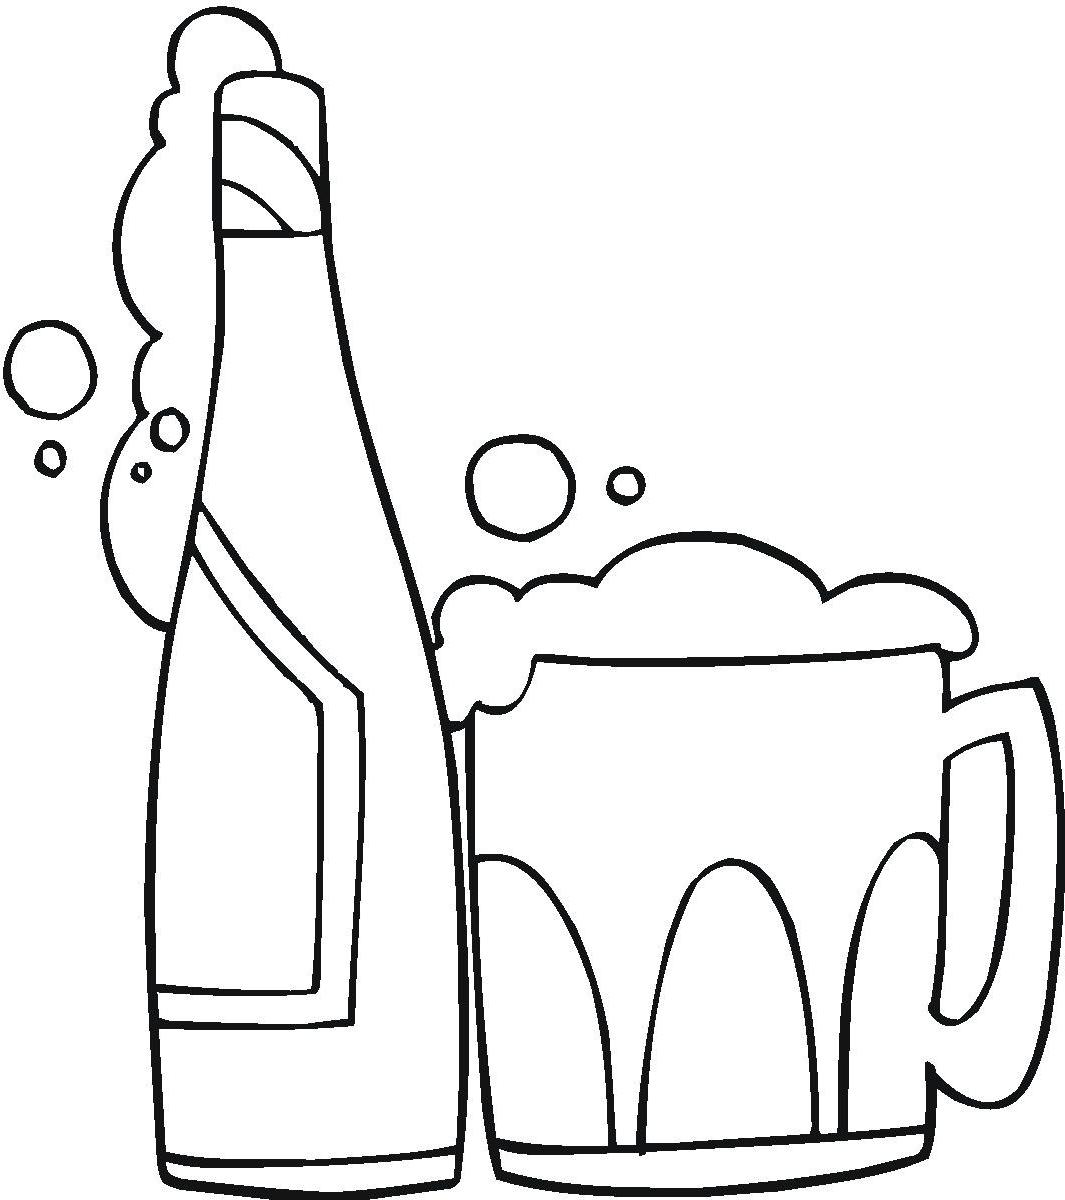 Alcohol clipart black and white. Best hd cdr vector